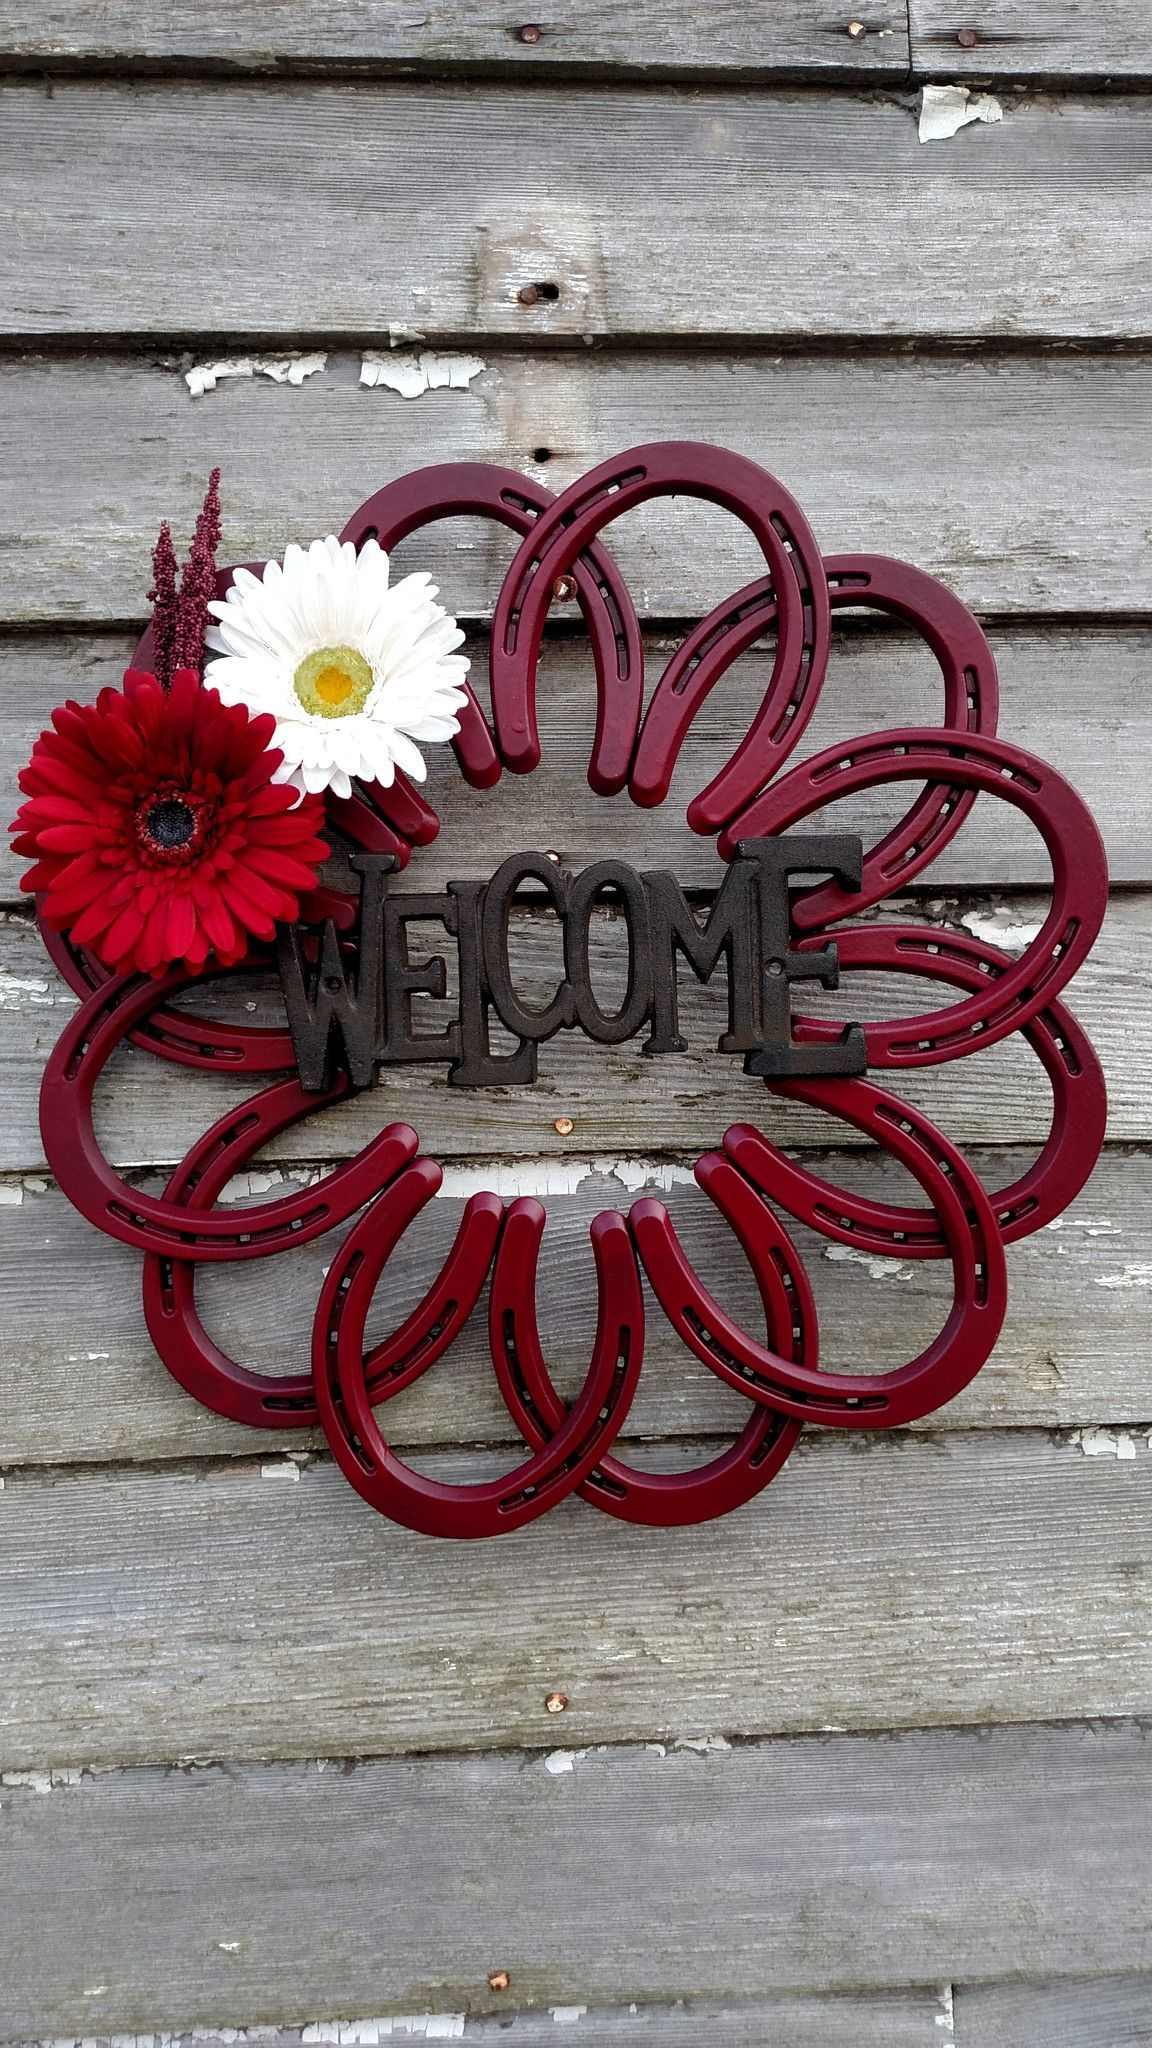 High quality handmade welcome sign made out of horseshoes for Wholesale horseshoes for crafts